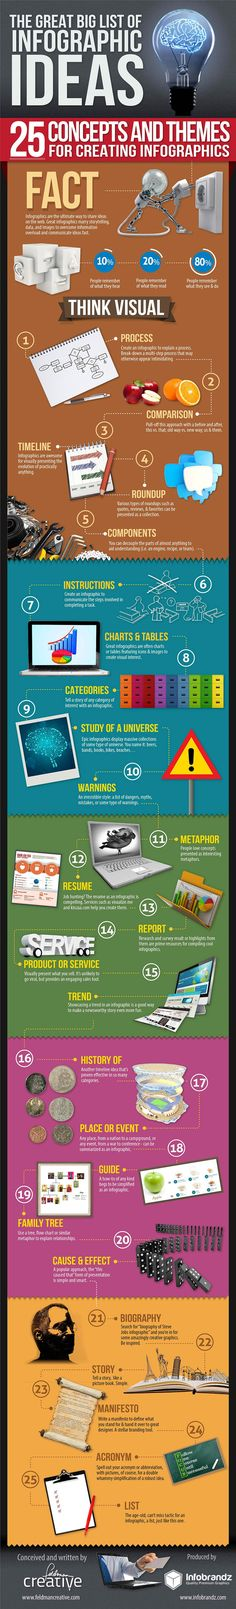 [Infographic] Great Big List Of Infographic Ideas Infographic - @therealvisually